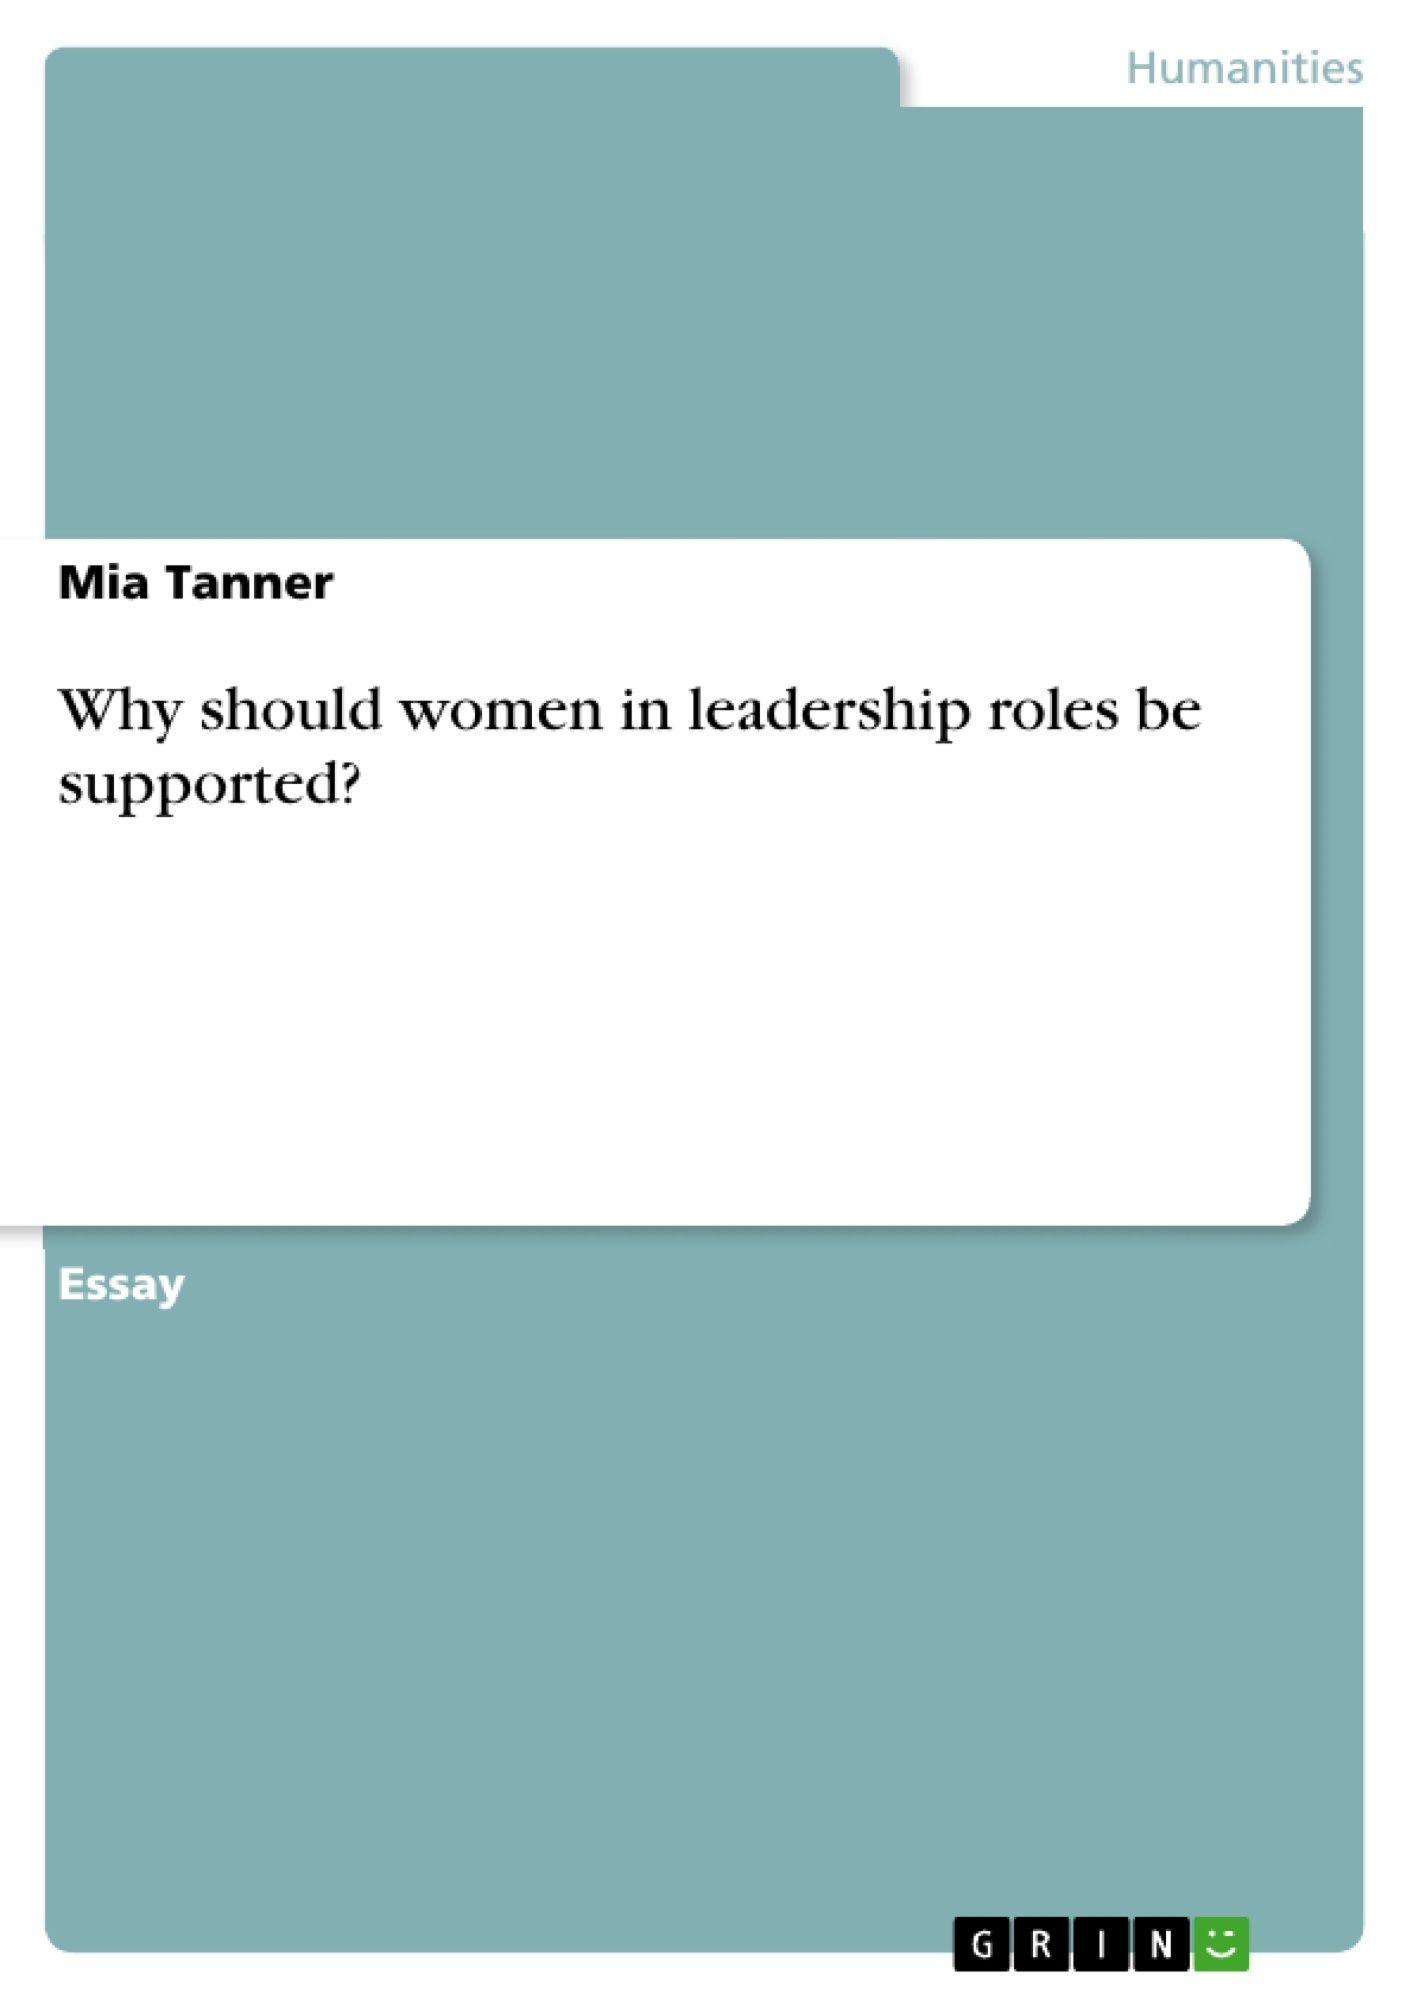 Title: Why should women in leadership roles be supported?